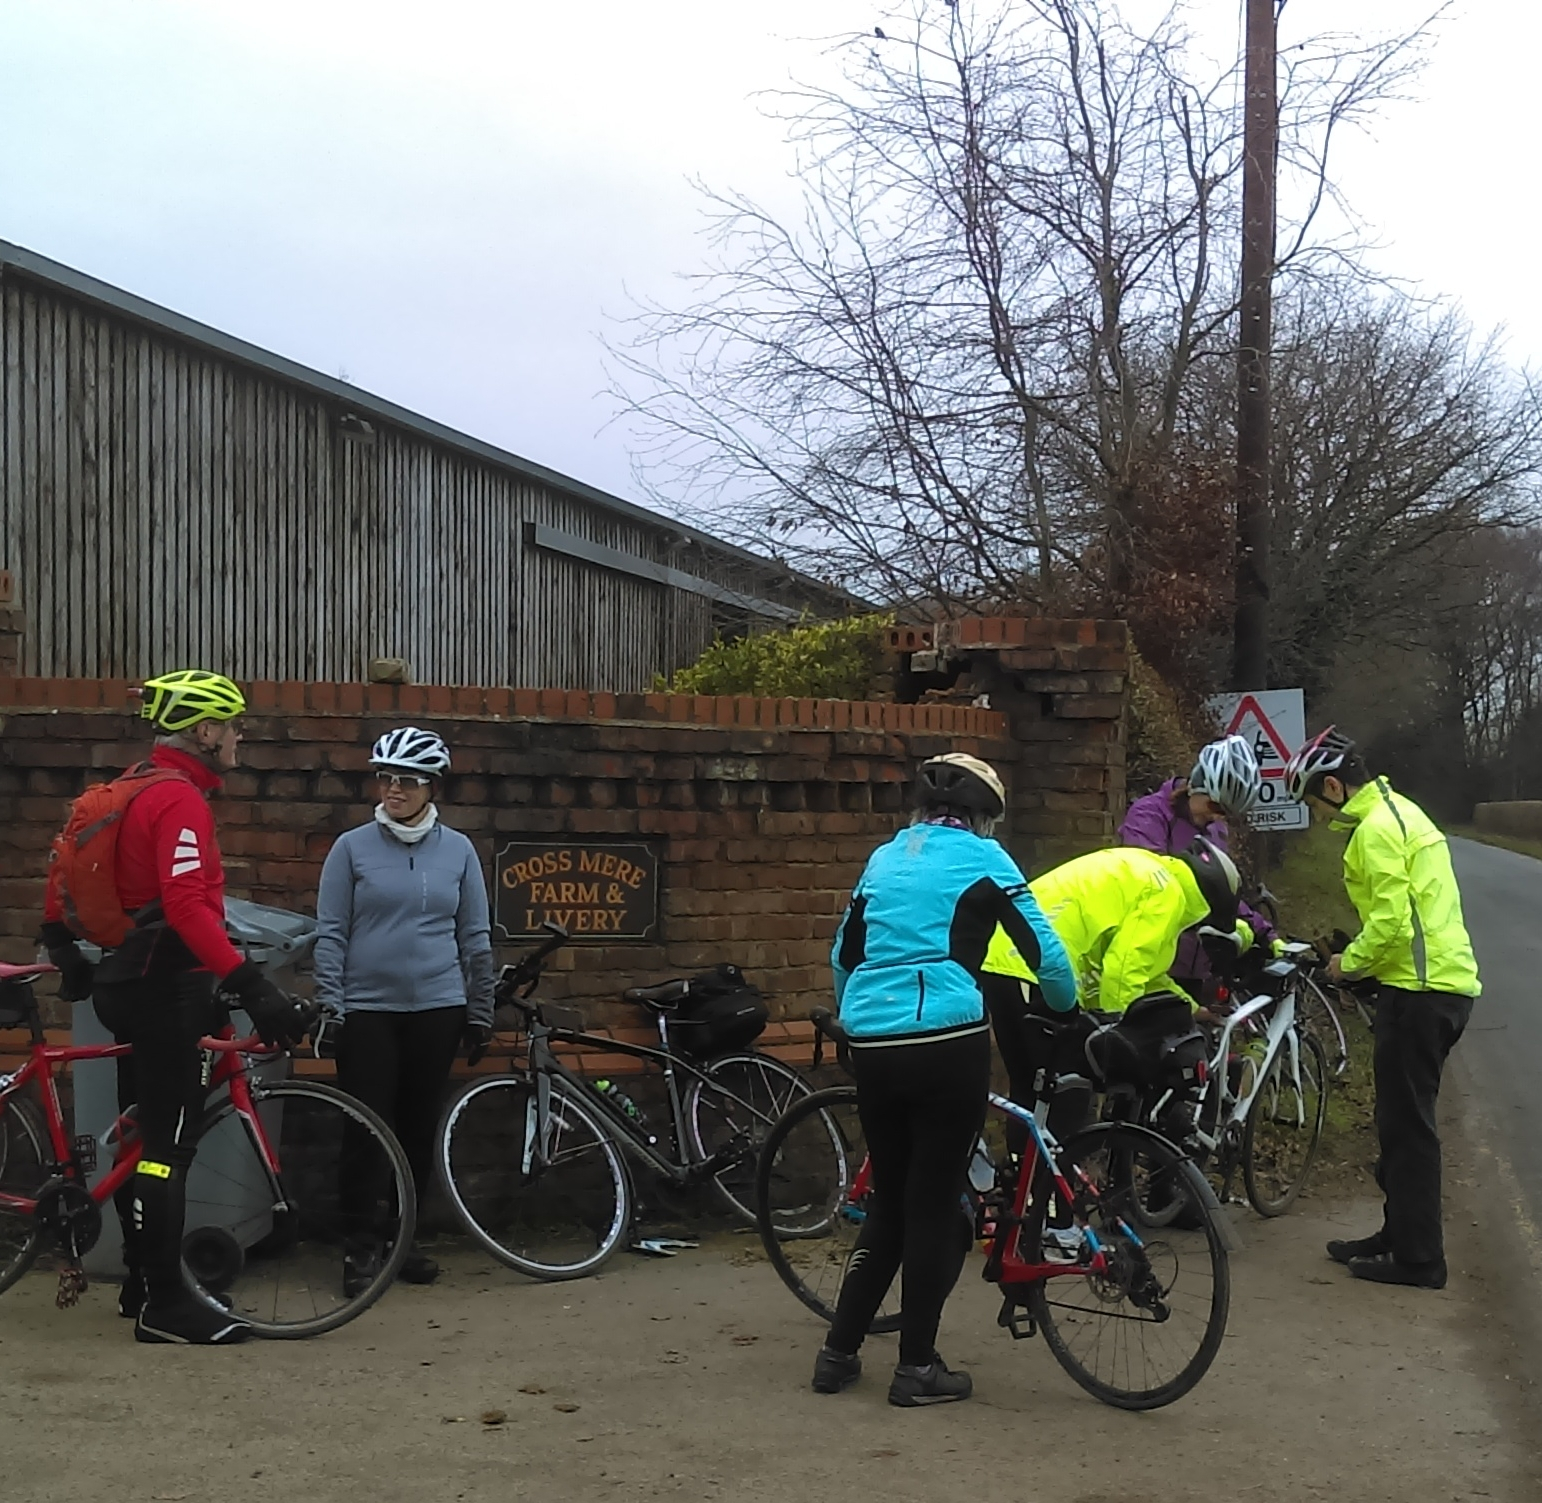 Team effort on the puncture